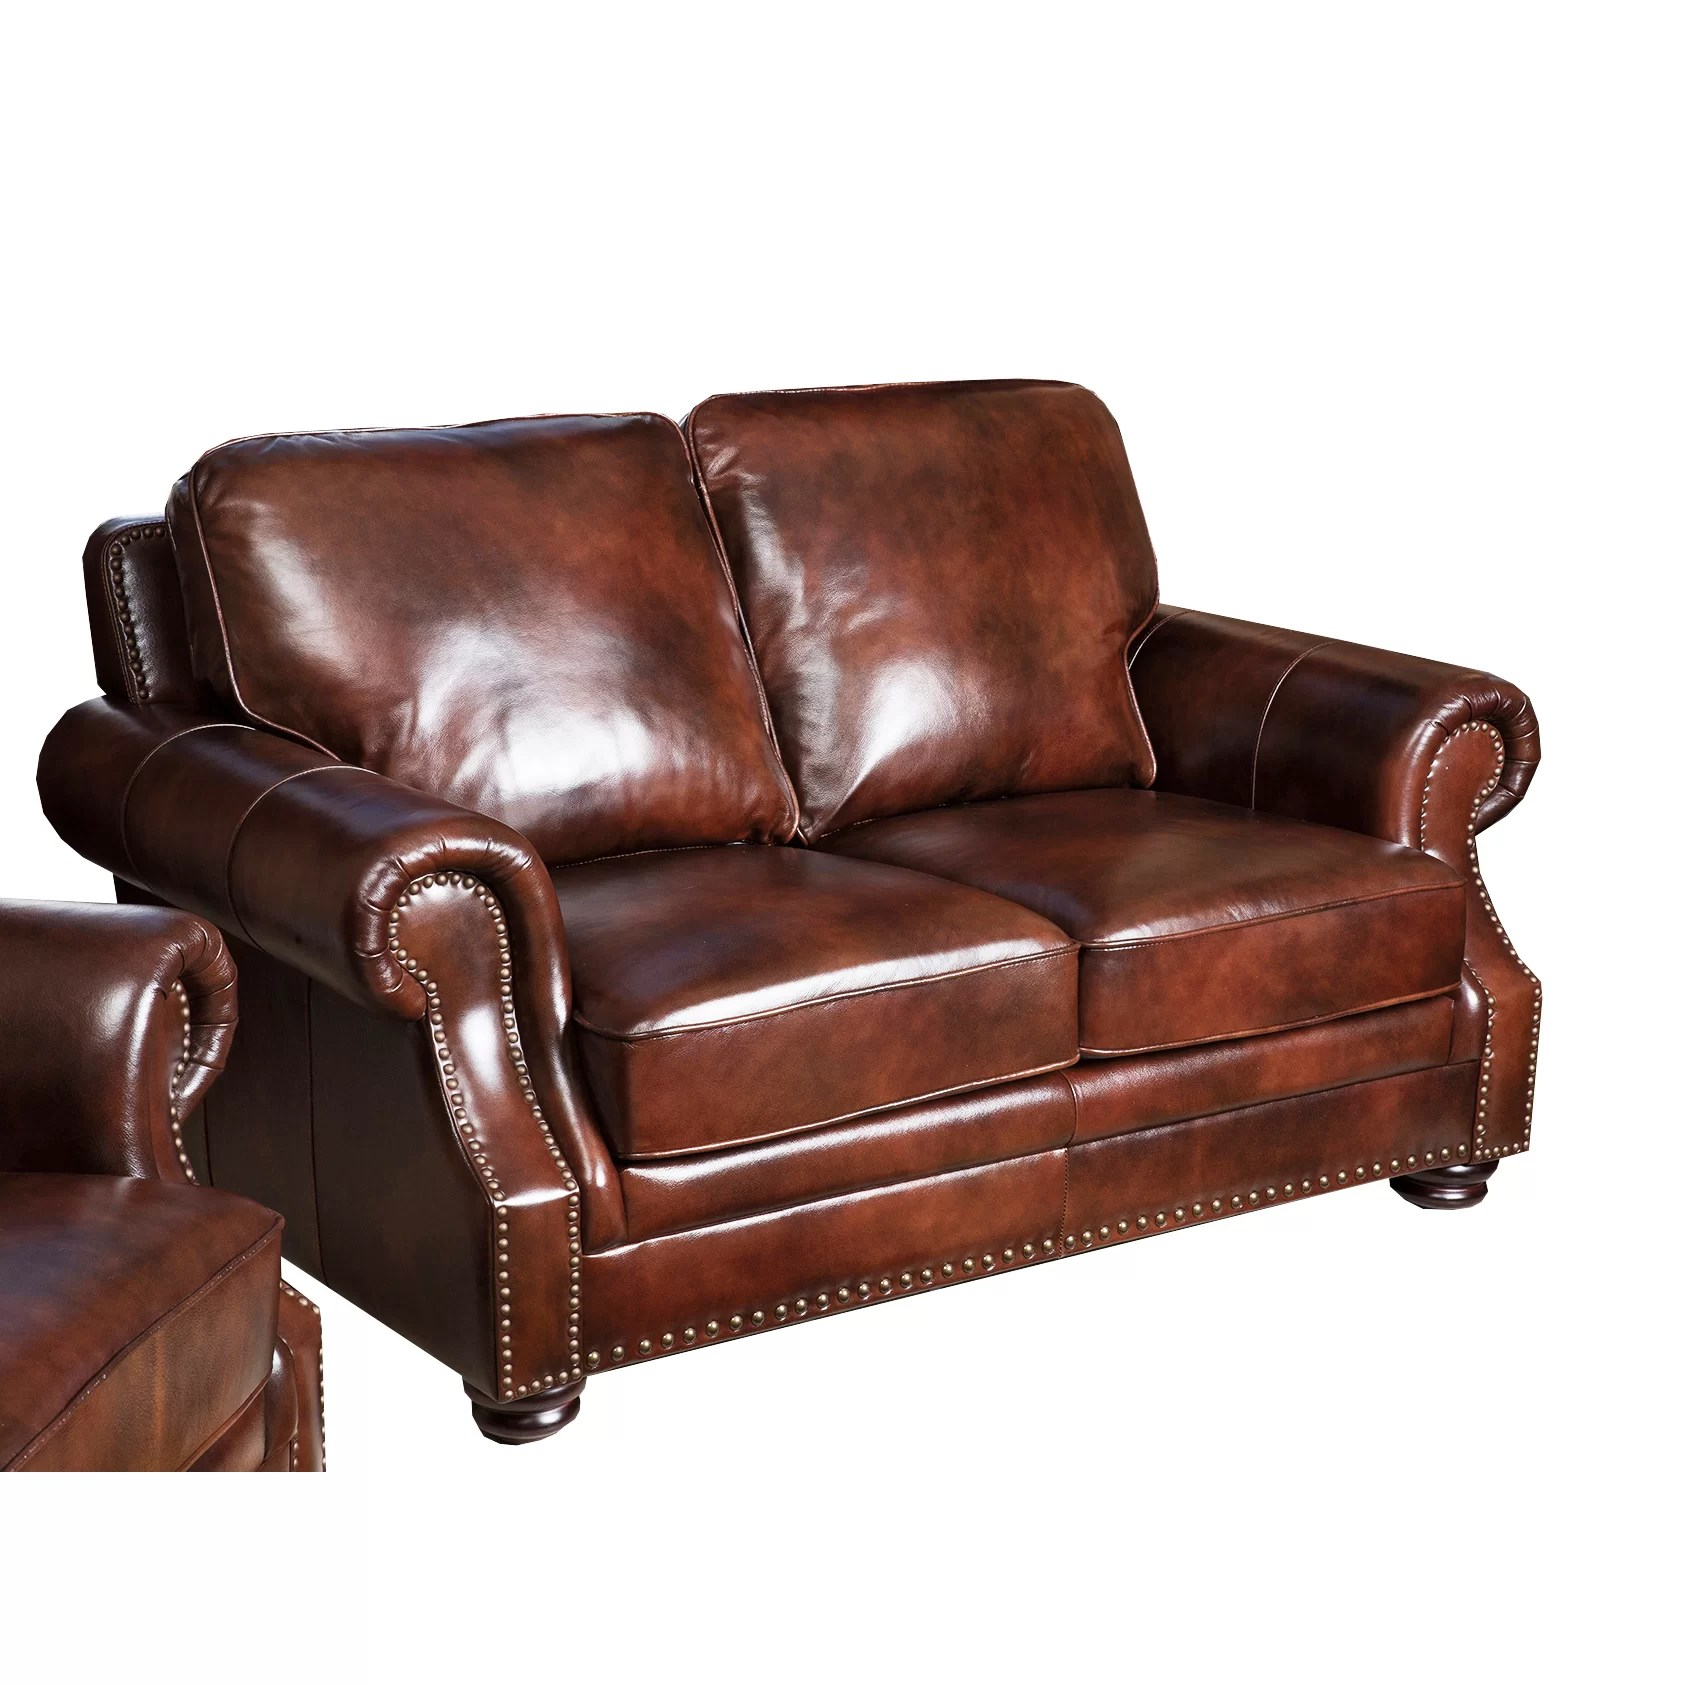 abbyson leather sofa reviews sofas for small spaces living karington loveseat and wayfair